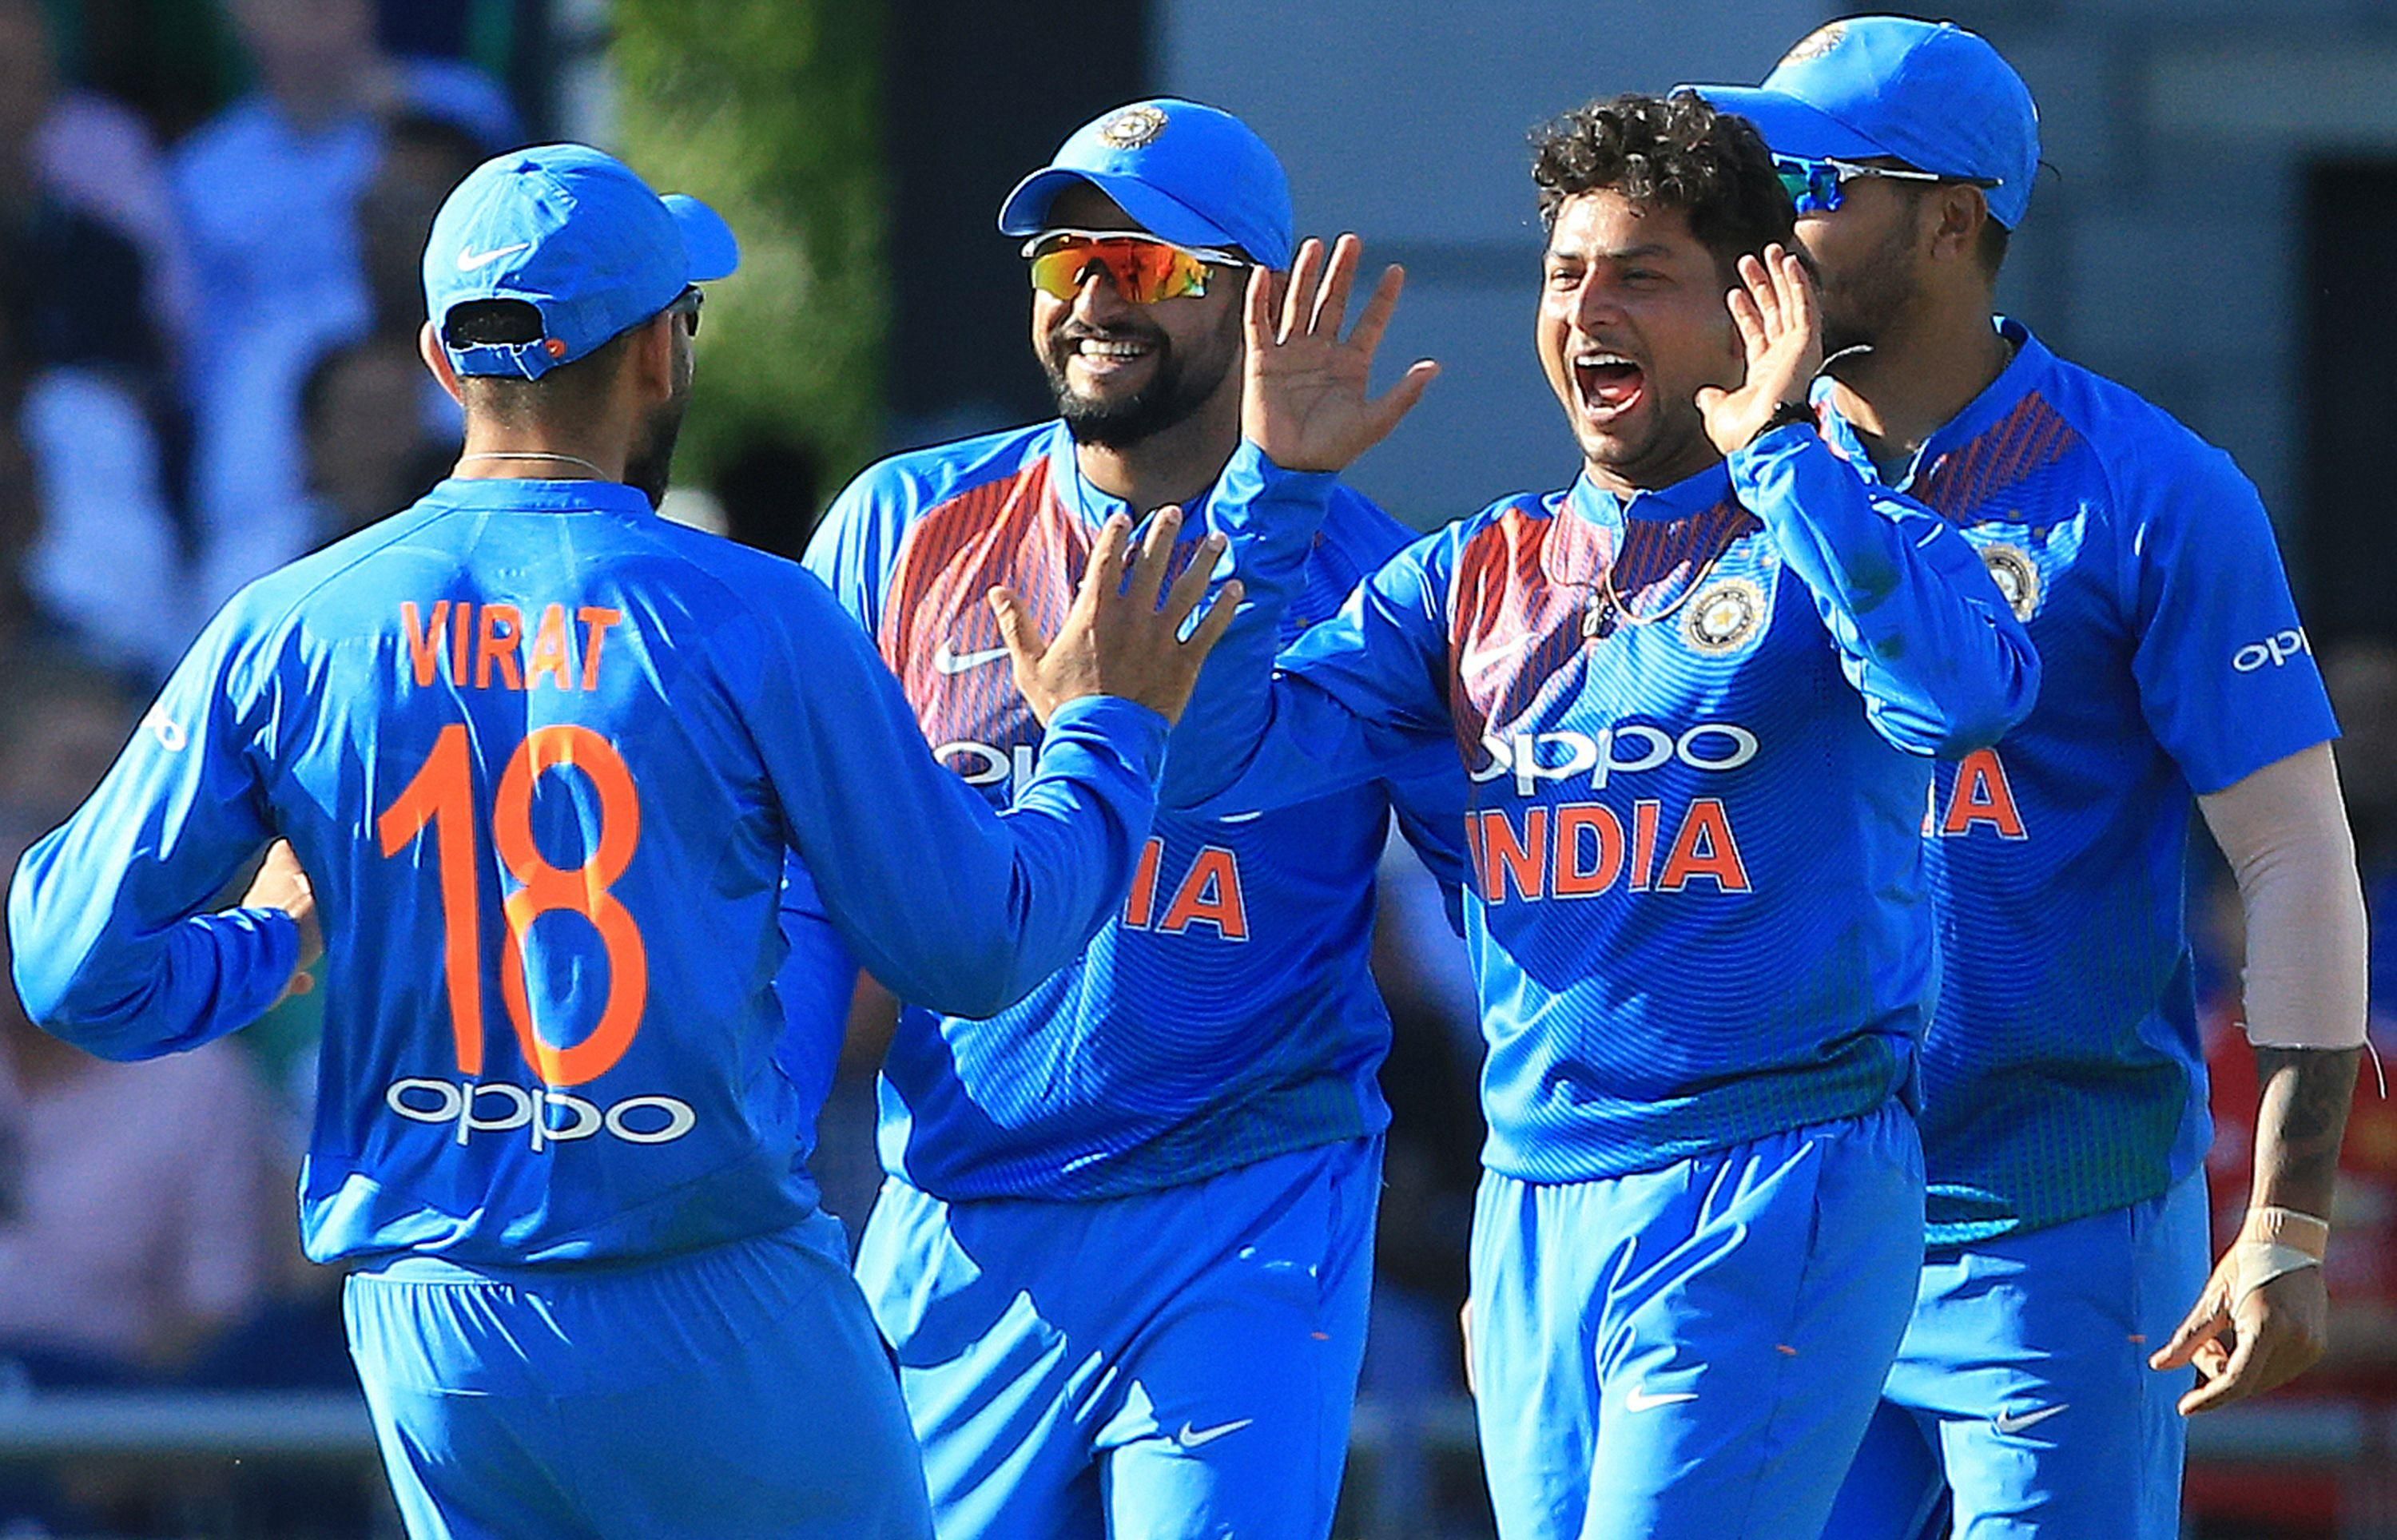 India thrashed England in the first of three T20s at Old Trafford on Tuesday